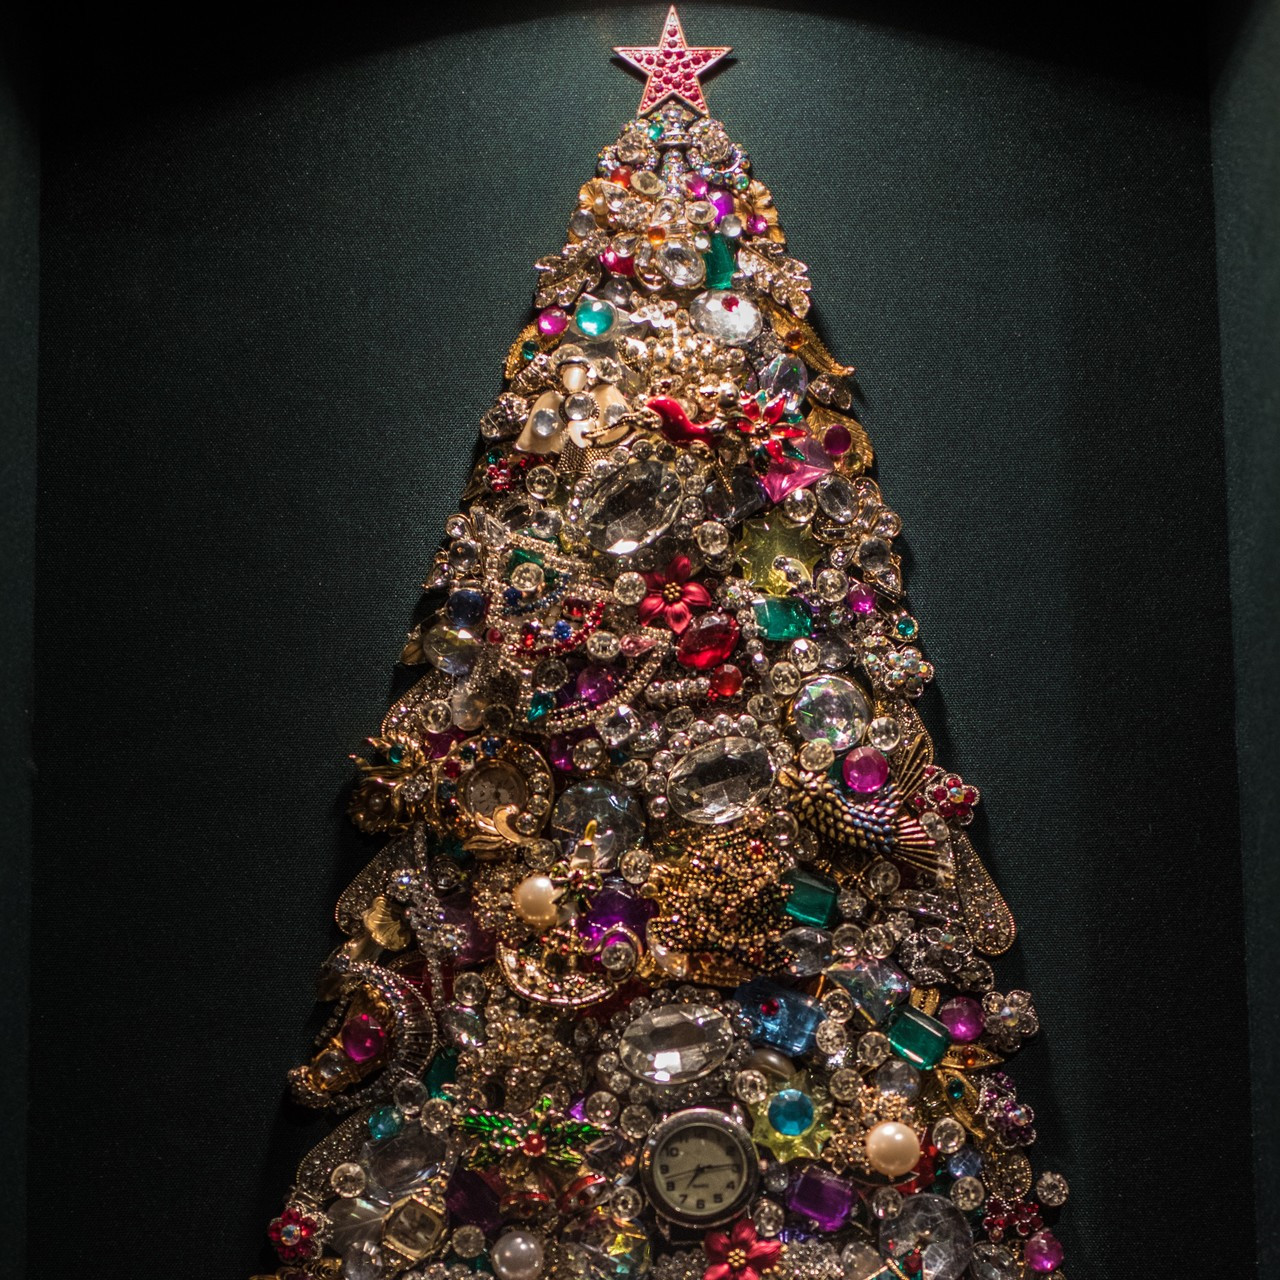 December 1st Jeweled Christmas Tree Tour and Workshop - 10:30 am ...